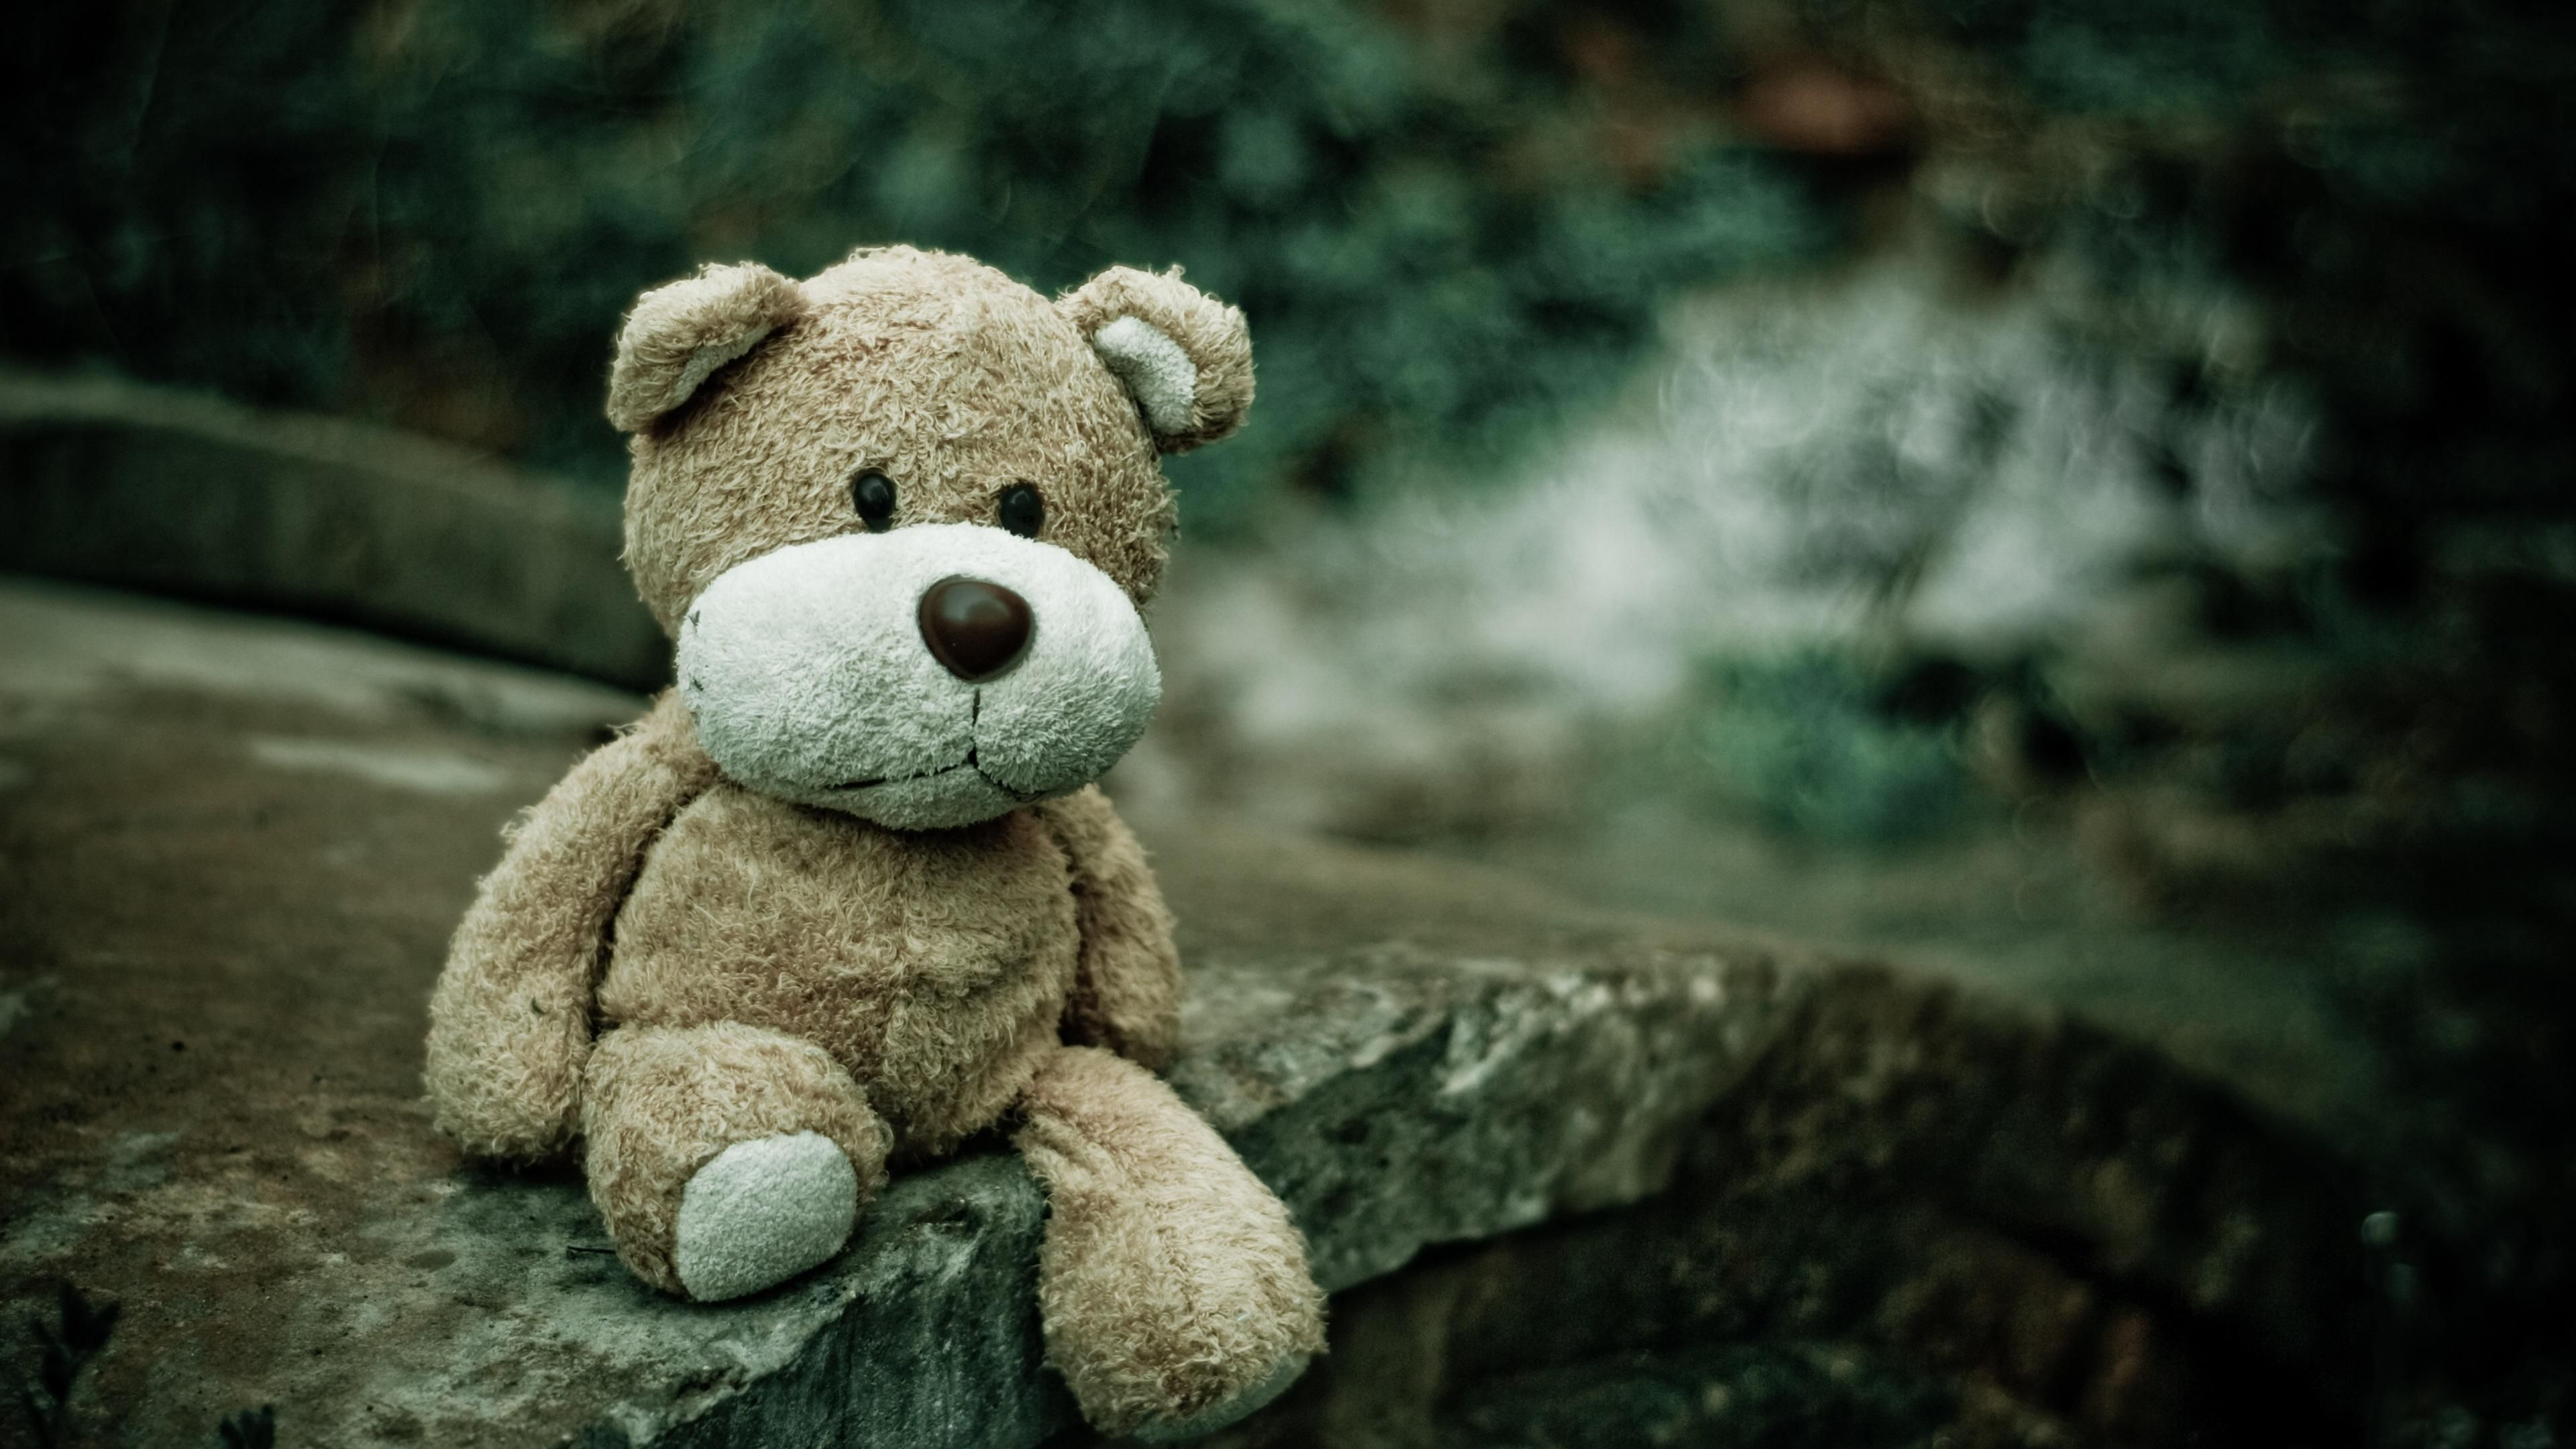 Sad Teddy Bear Hd Wallpaper 473617 Ffd Teddy Bear Bear Teddy